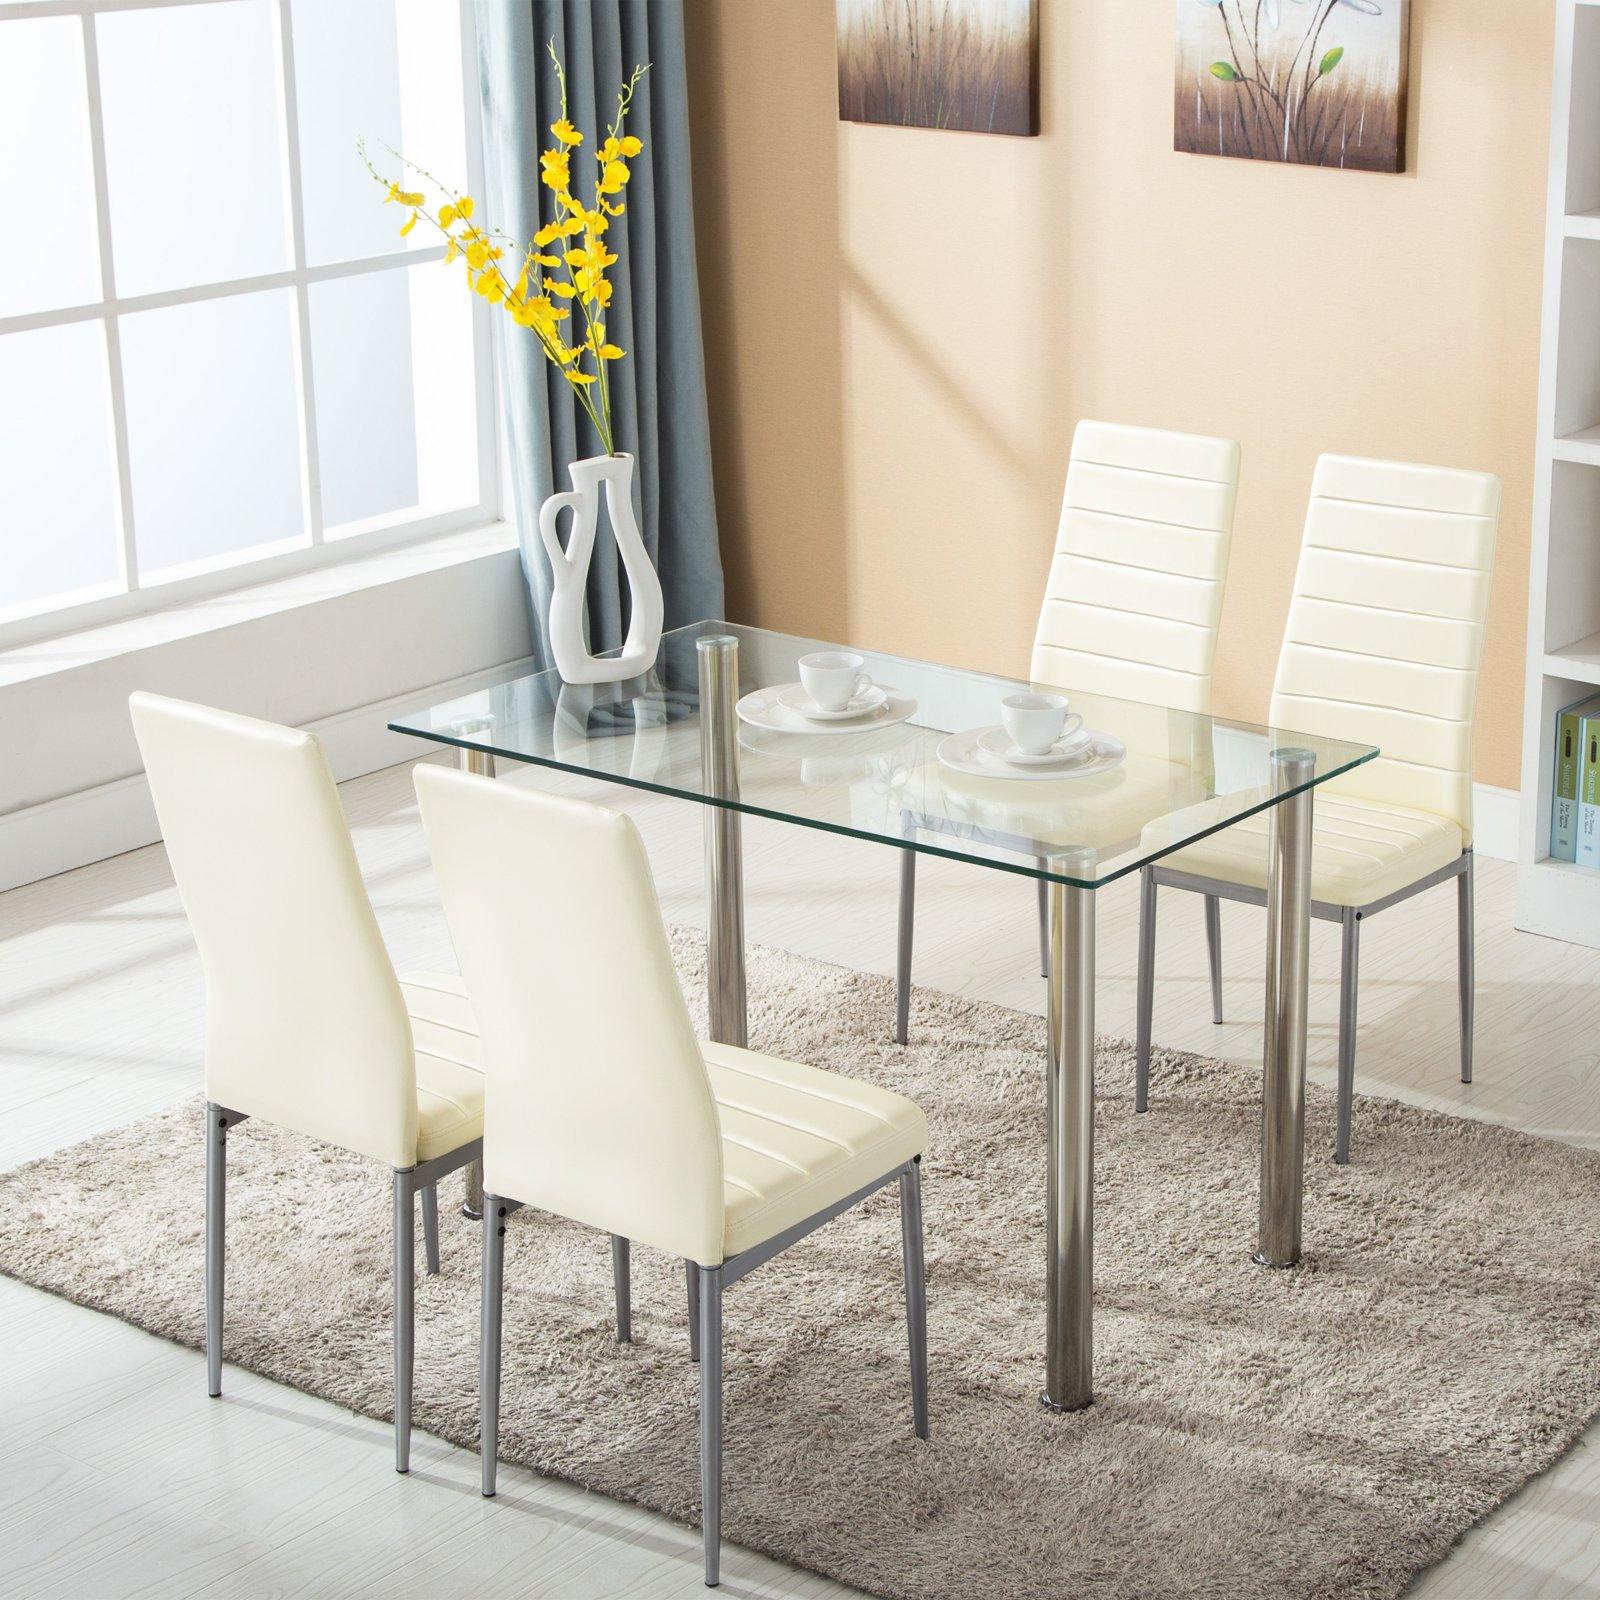 mecor 5 Piece Dining Table Set Glass Top Dinette Sets with 4 Leather Chairs,Light Yellow by mecor